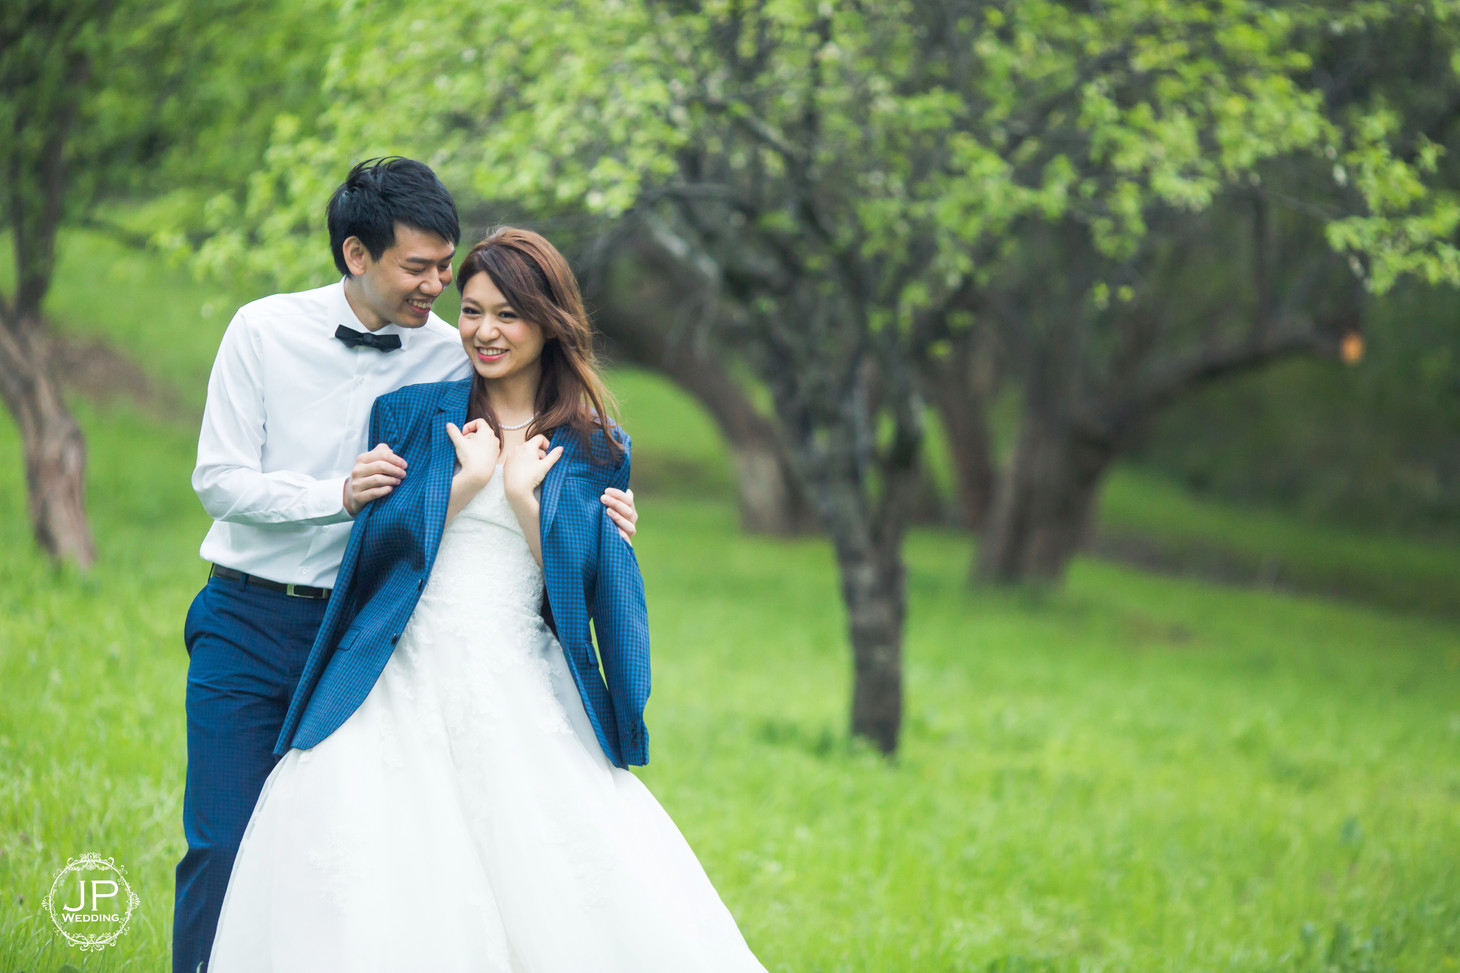 JP_Wedding-Hong_Kong_Prewedding_Photoshoot_-3.jpg